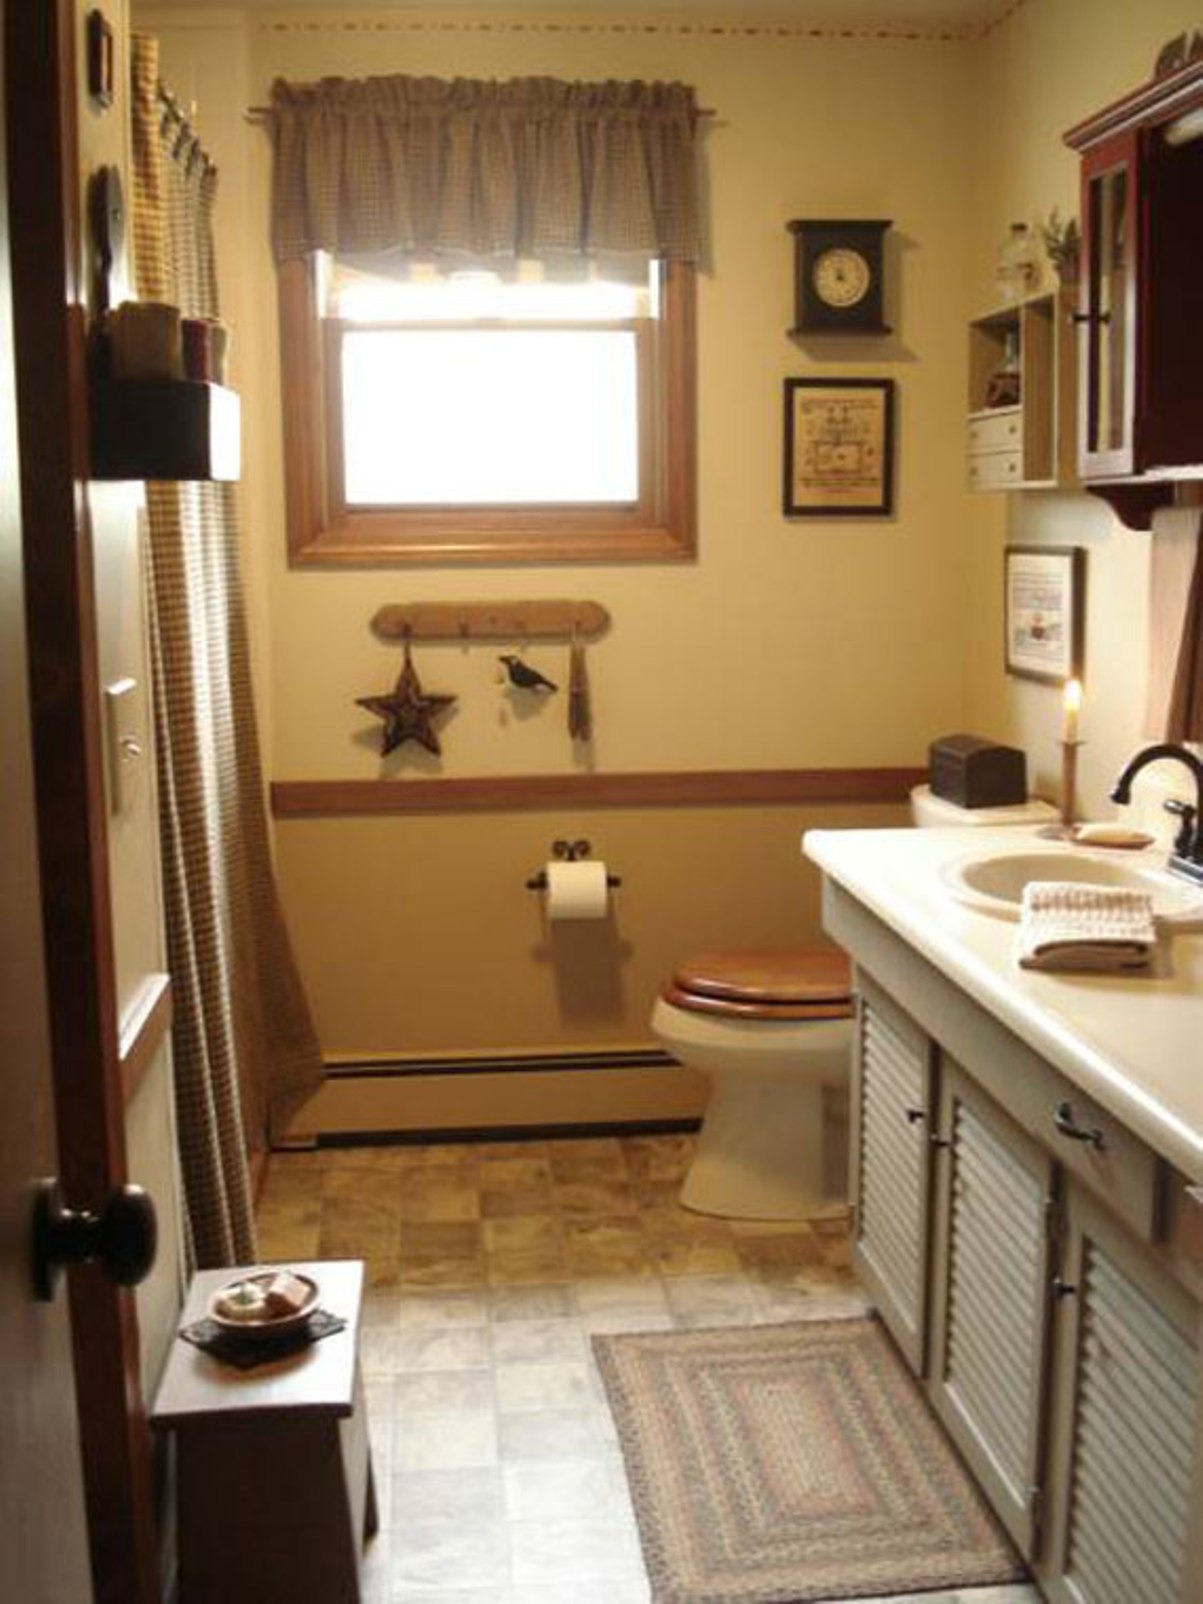 primitive country bathroom decorating ideas primitive plus bathroom decorating ideas bathroom decorations photo decorating bathroom